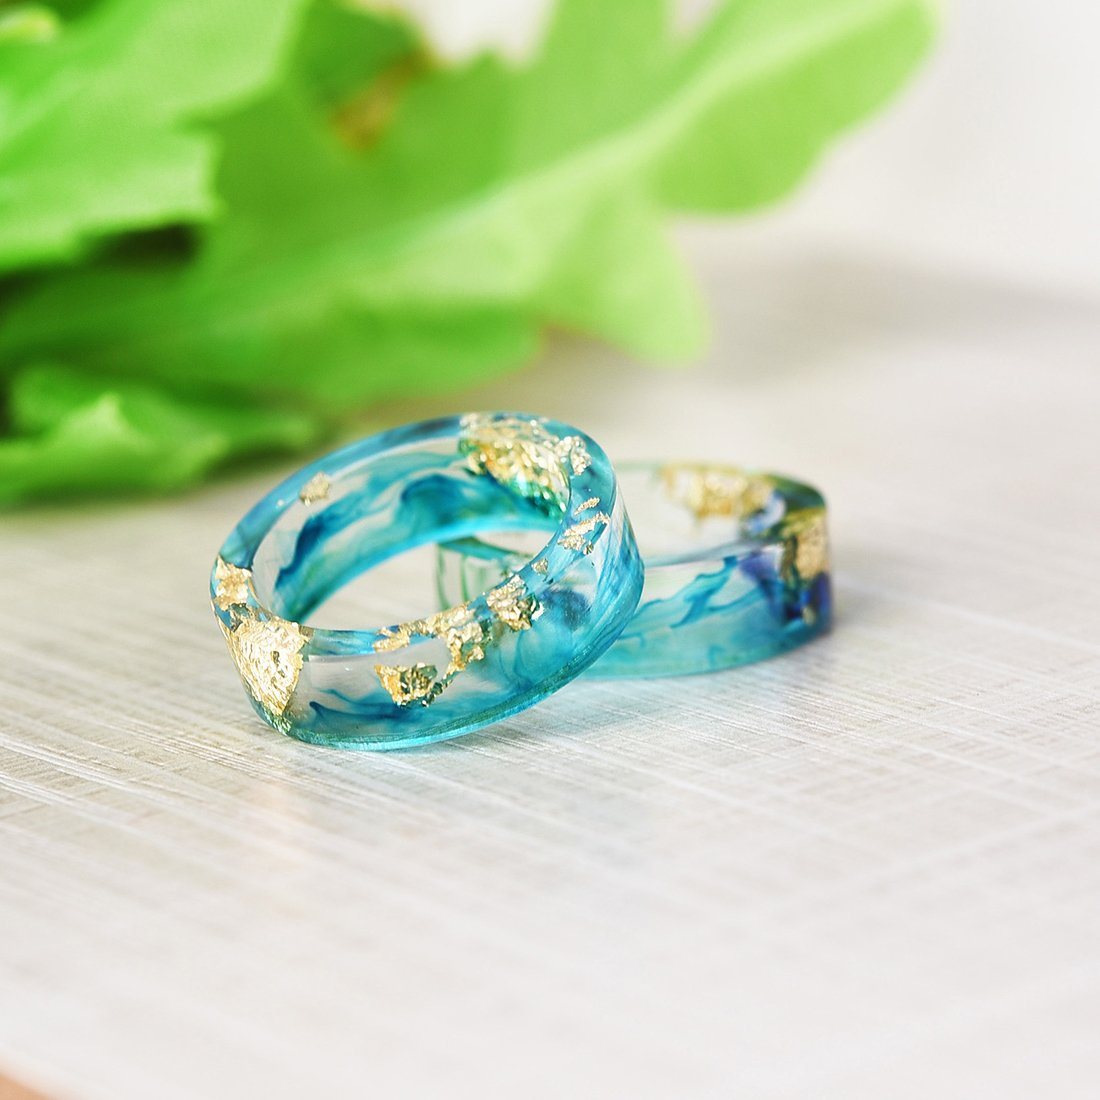 Amazon.com: JEWH 2018 HOT Flower Hand-Dried Ring - Best Mold Dried Flowers DIY Gift - Sweet Lovely Ring for Lady (10): Arts, Crafts & Sewing